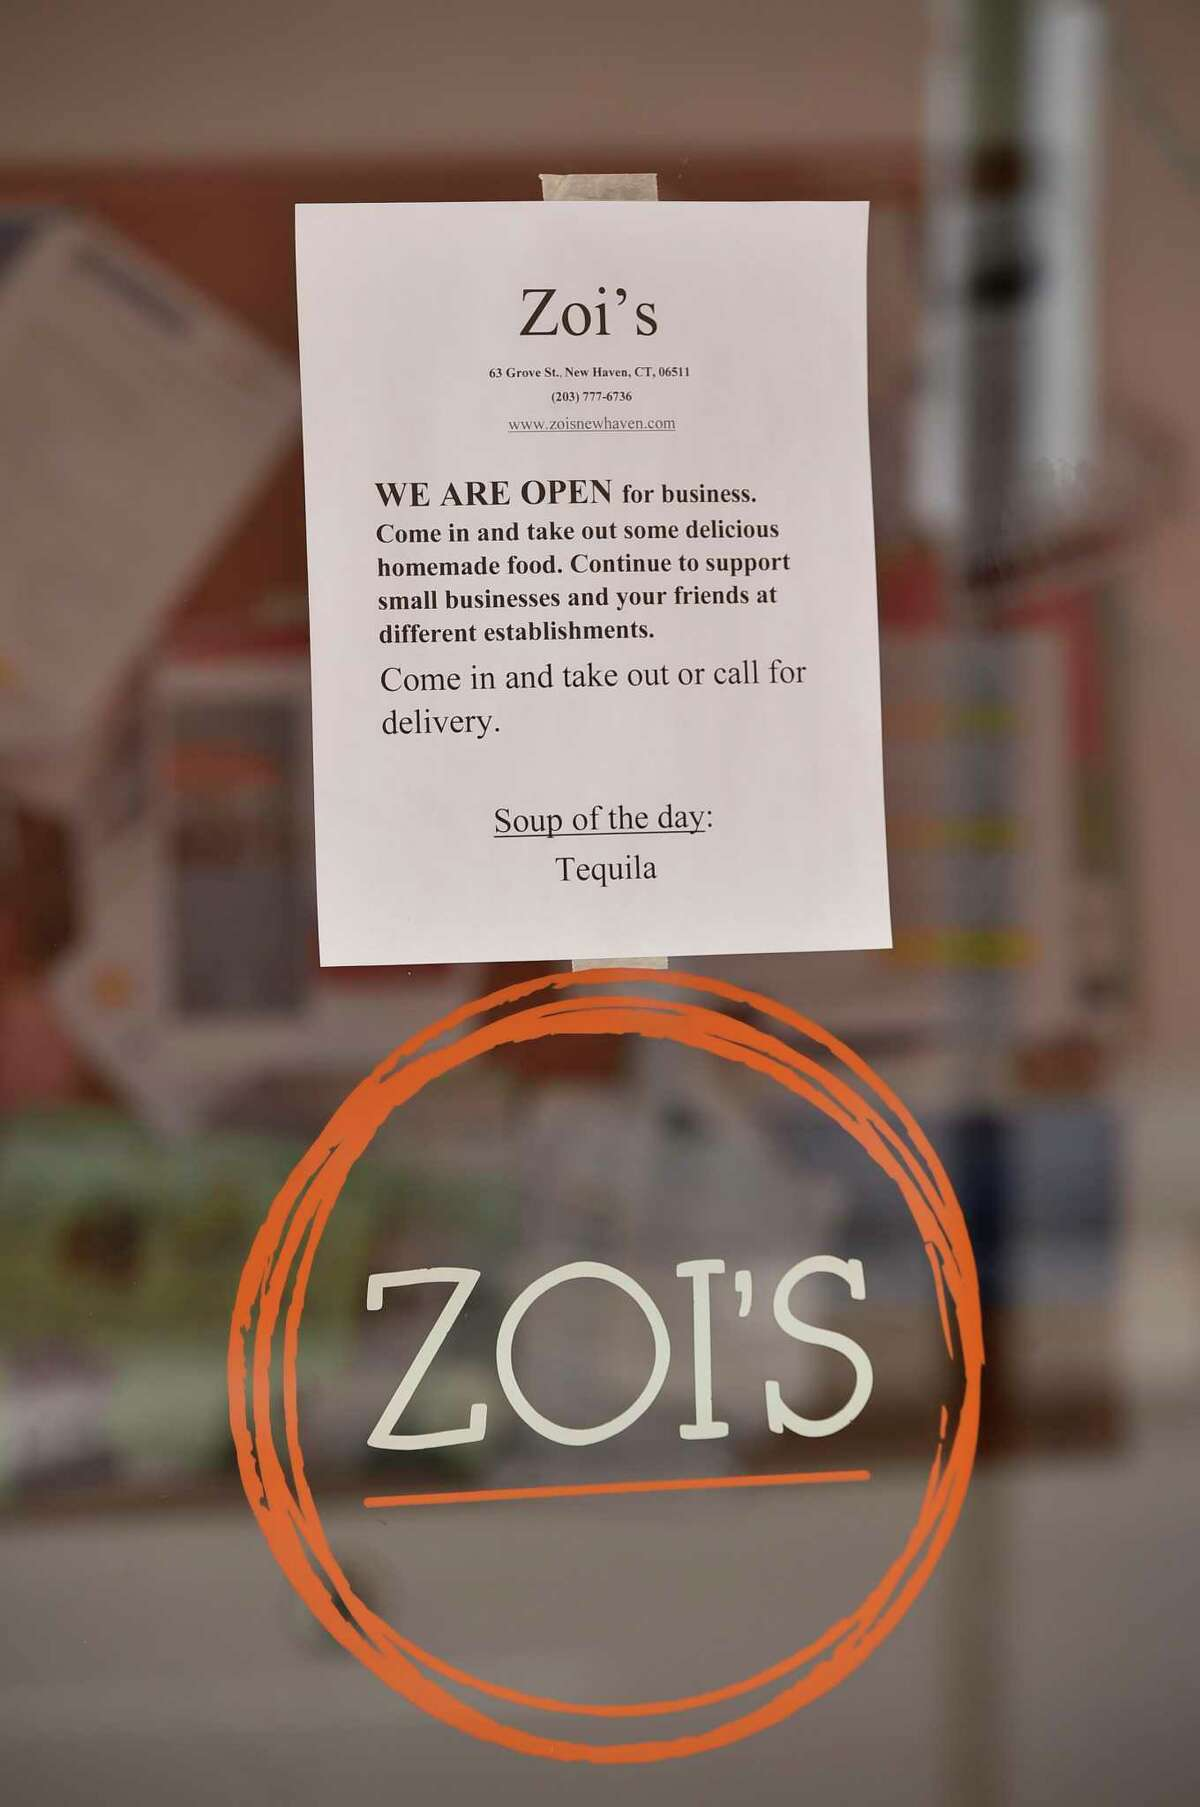 A notice in March on the front door of Zoi's, a breakfast, lunch and catering service restaurant in New Haven, encouraging patrons to take out their food during the pandemic.